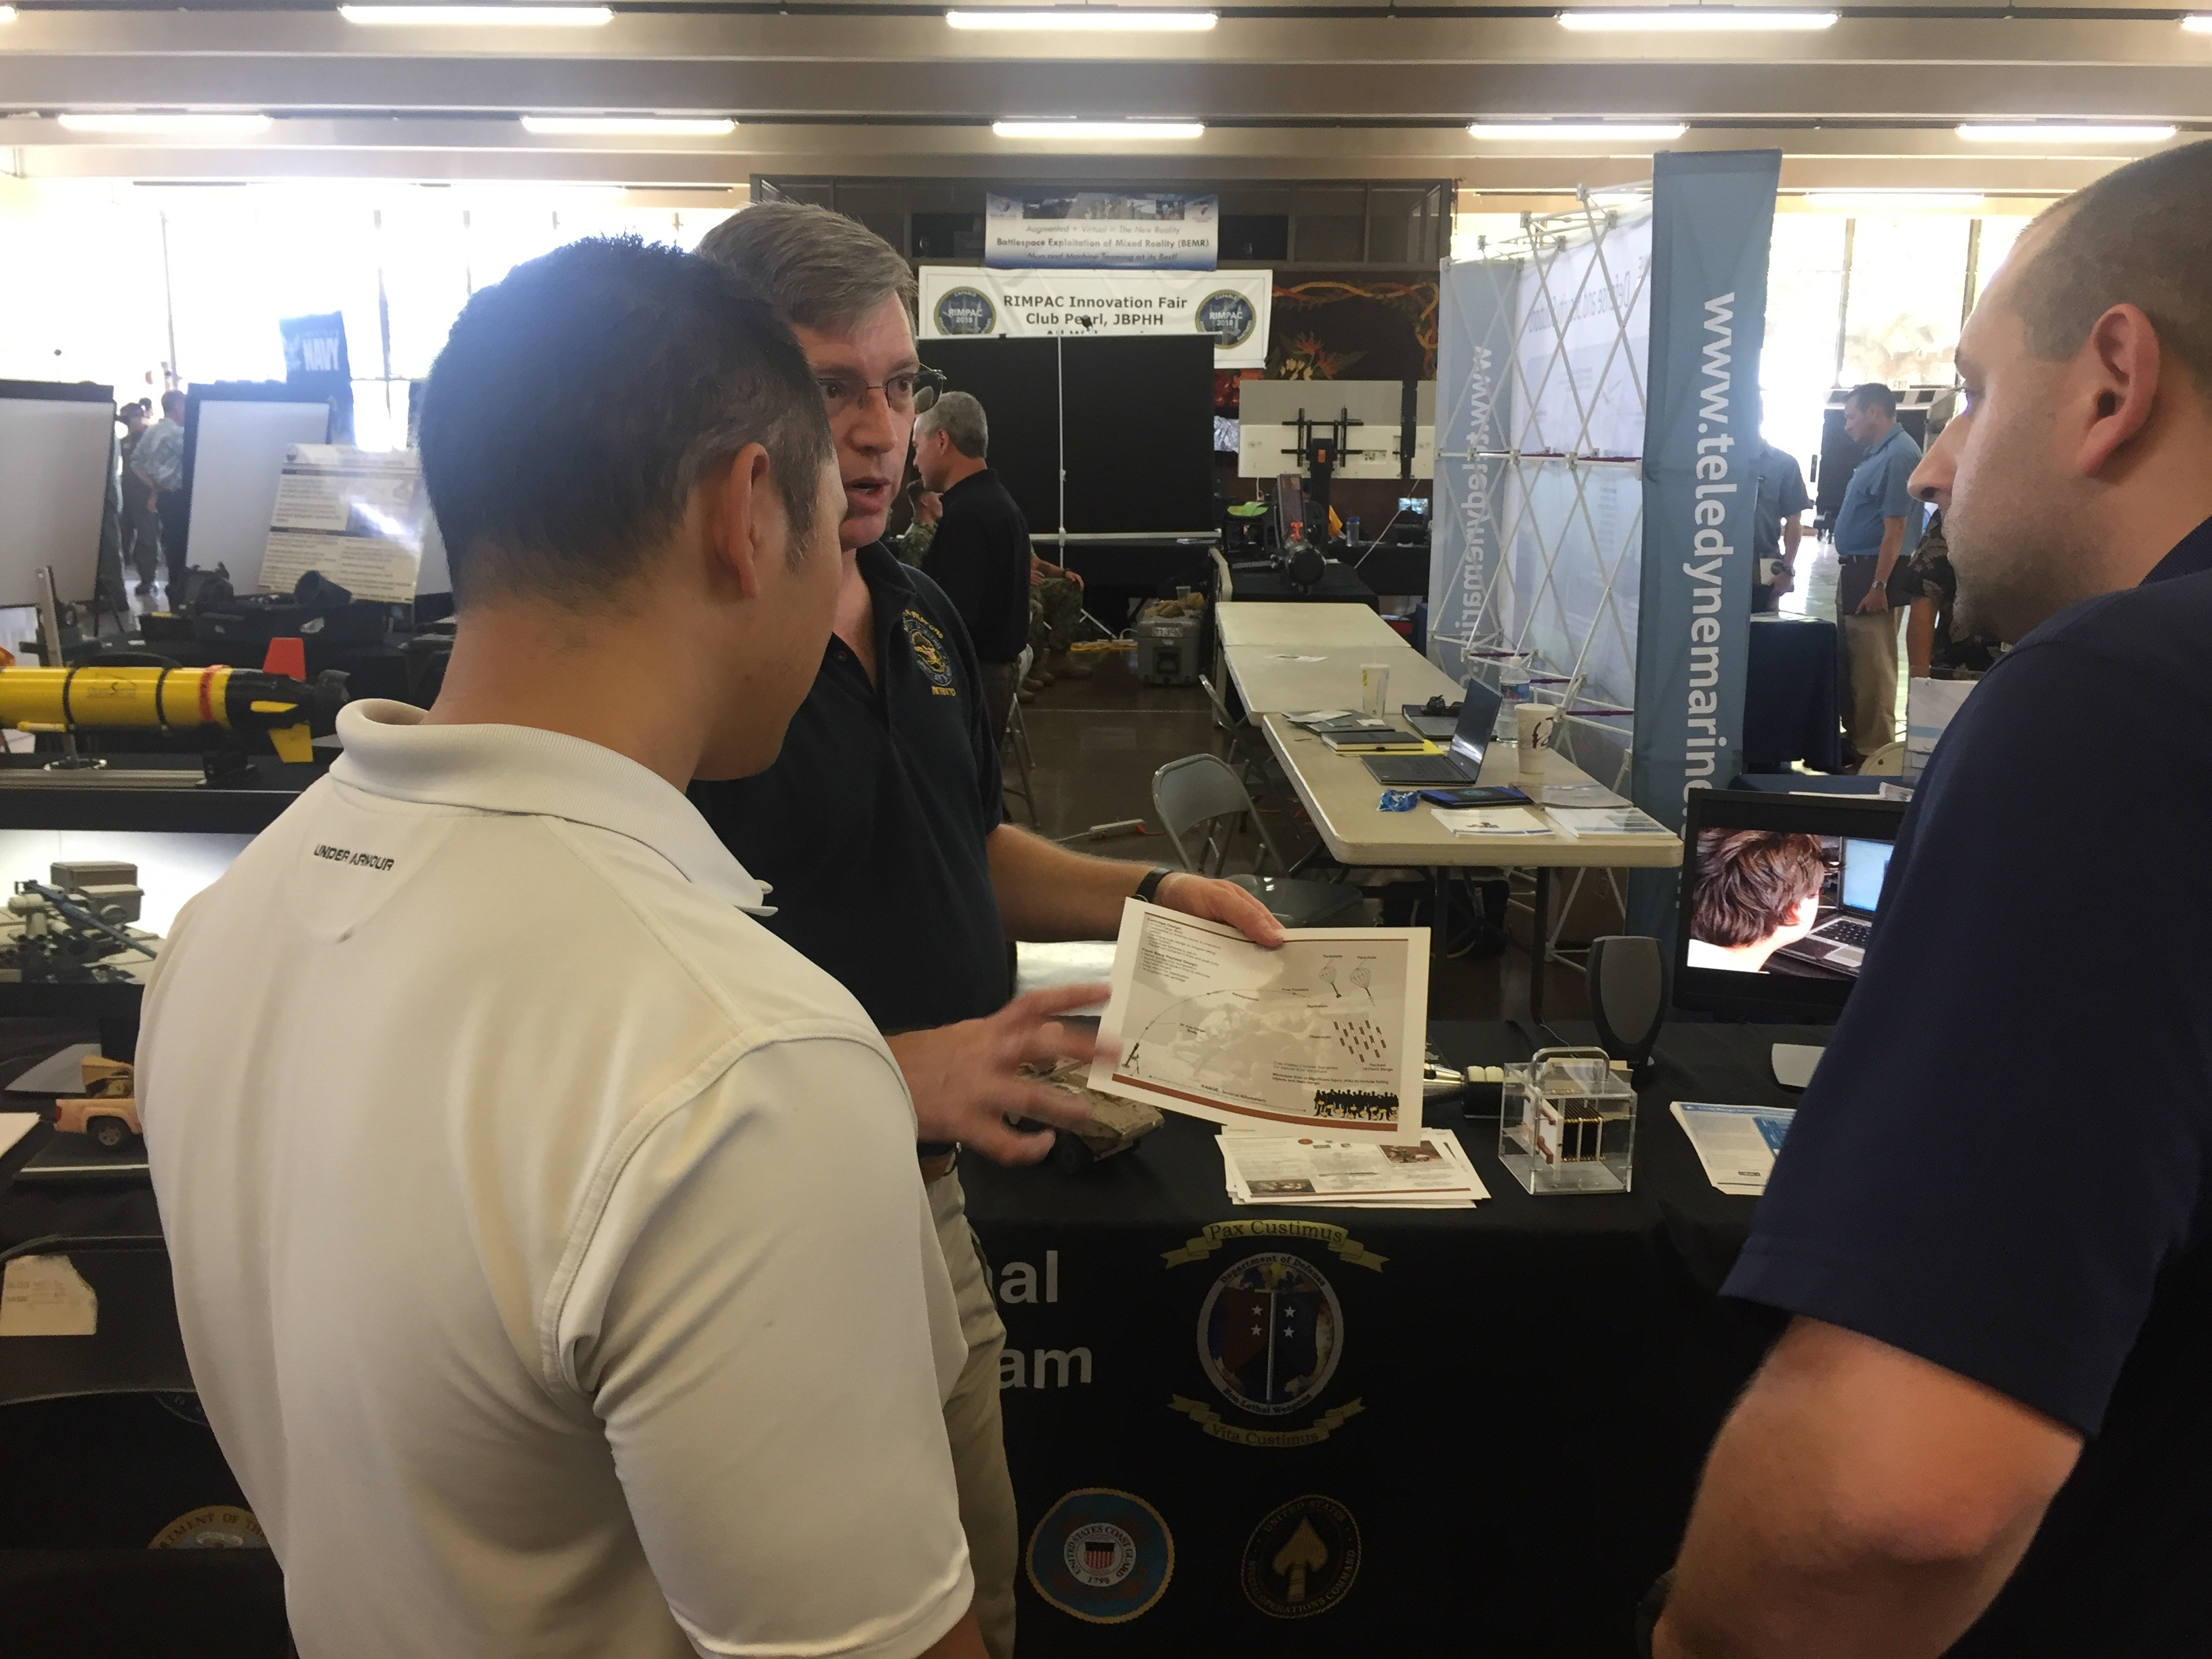 SOUND & LIGHT, NON-LETHAL DE WEAPONS ON DISPLAY AT INDO-PACOM INNOVATION FAIR